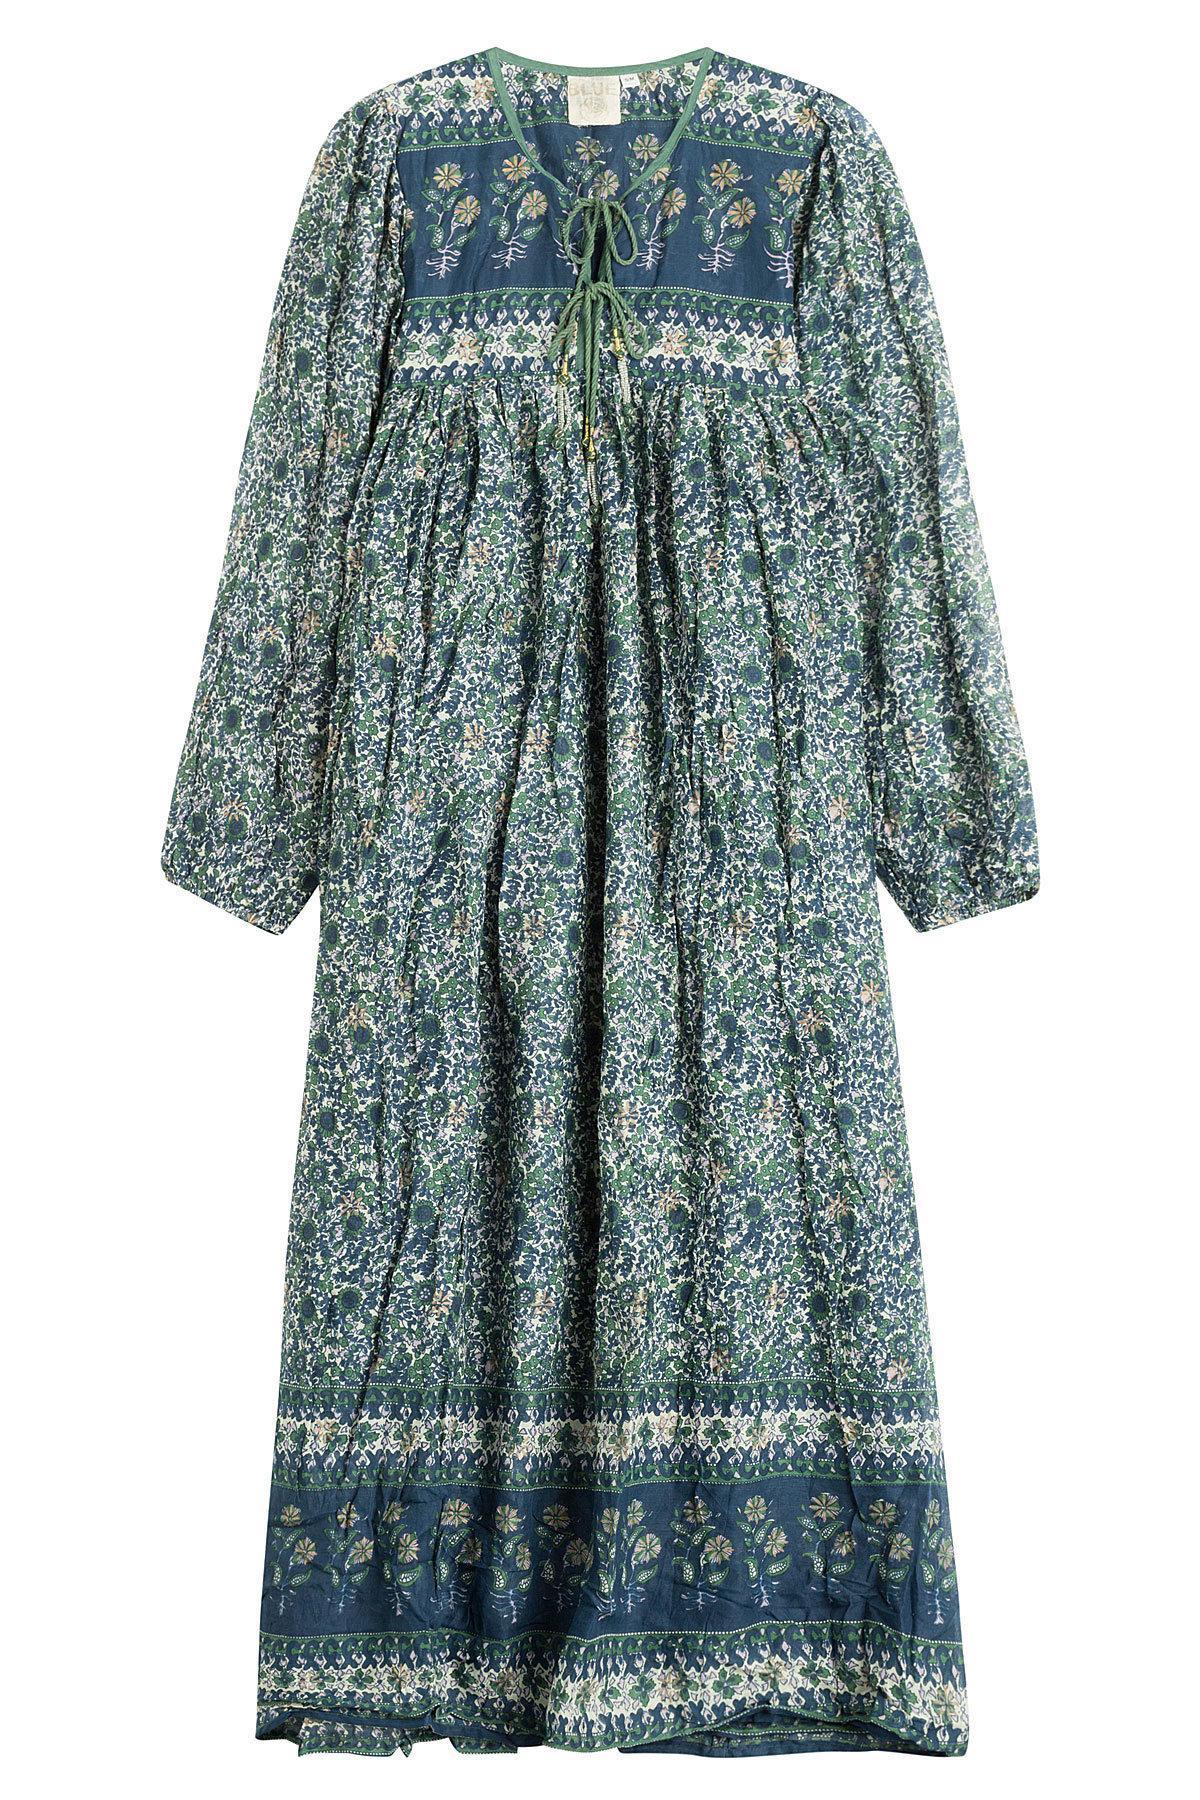 Blue Hippy Printed Cotton Dress In Florals